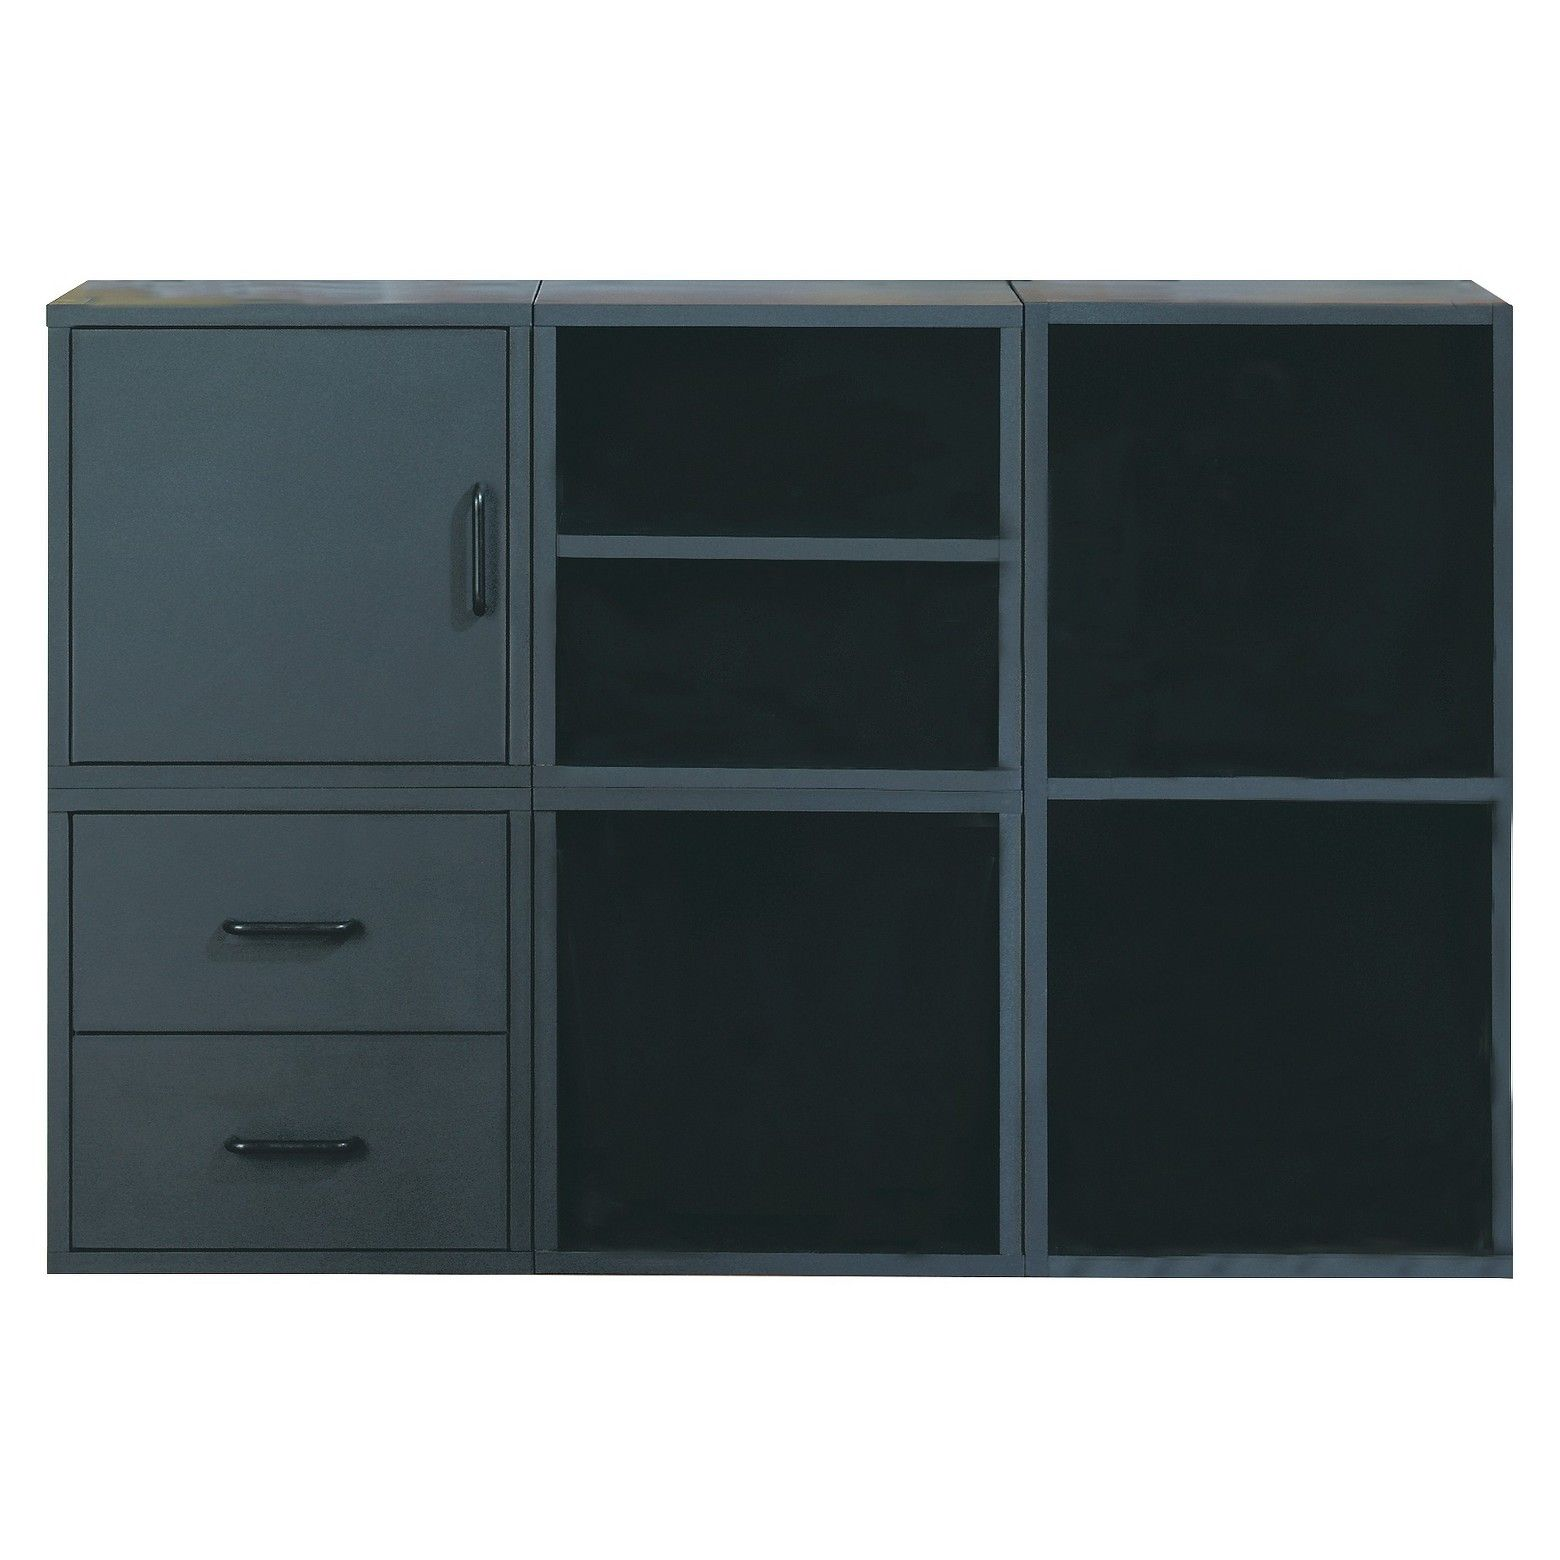 Foremost Modular Storage System is great for storage